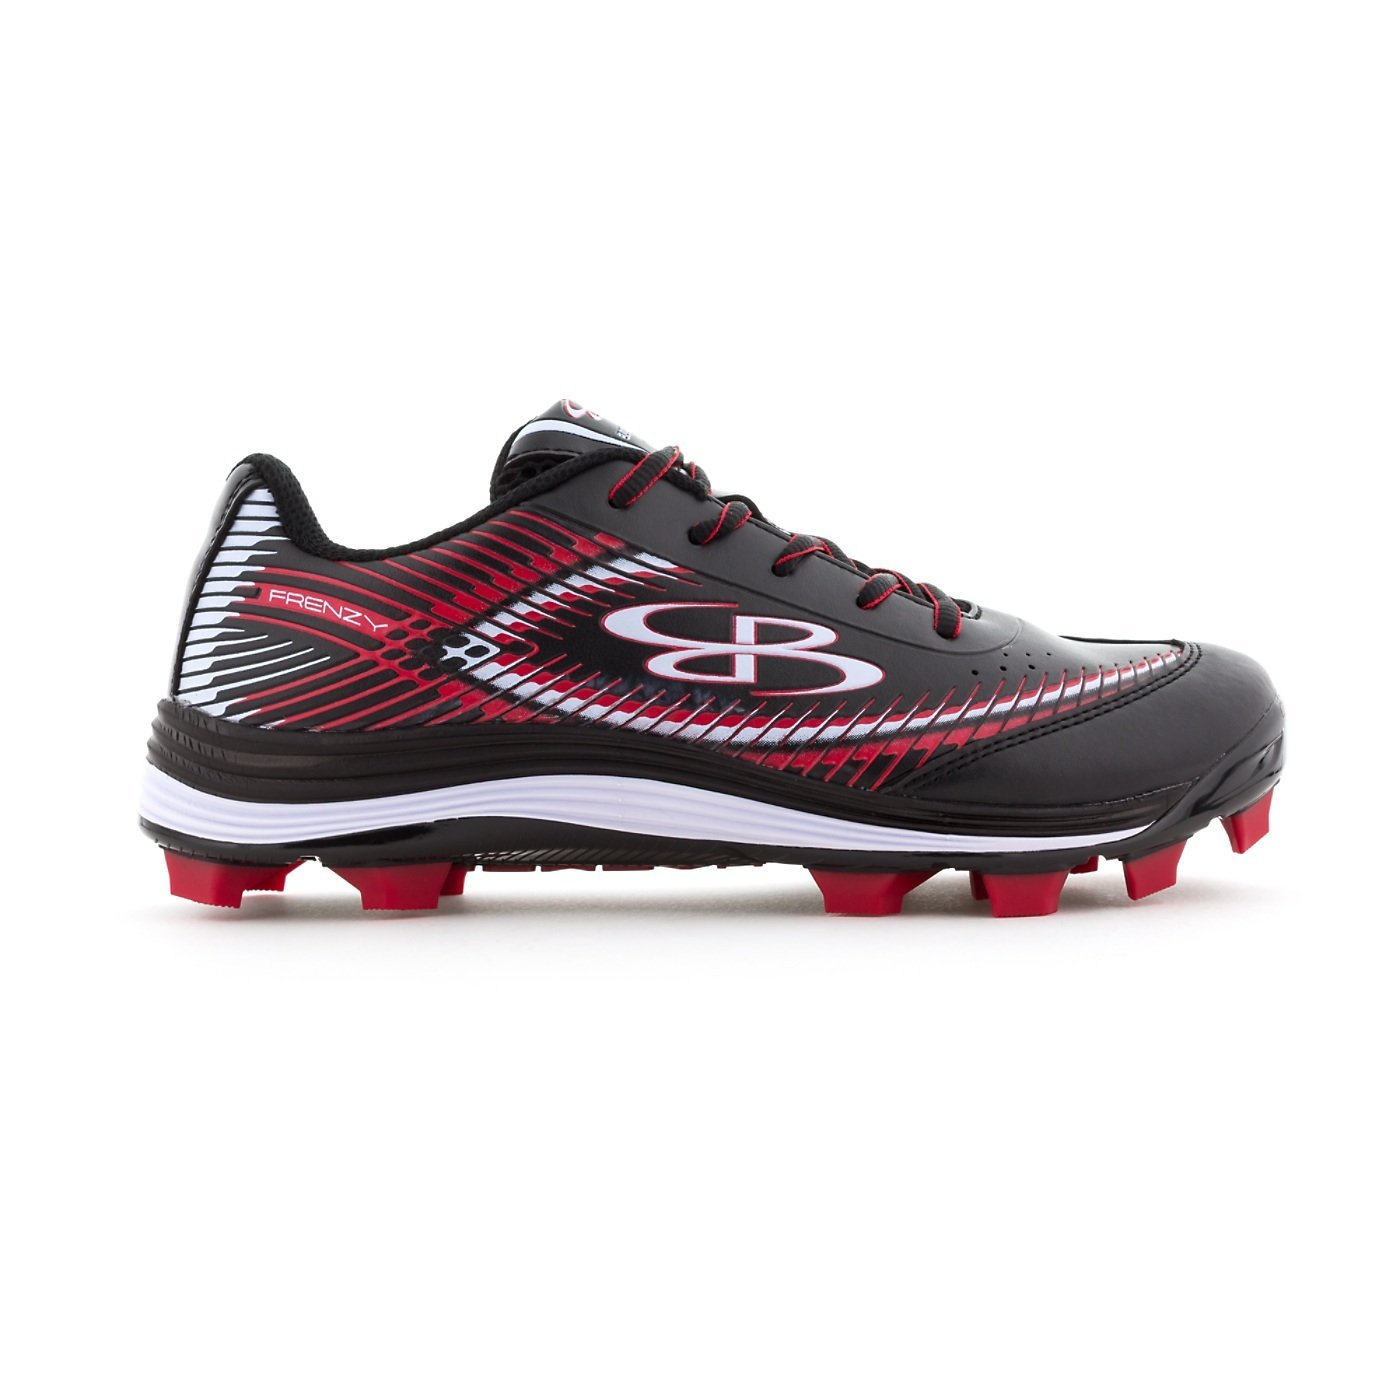 25a0d2264a5d Get Quotations · Boombah Women's Frenzy Molded Cleats - 13 Color Options - Multiple  Sizes